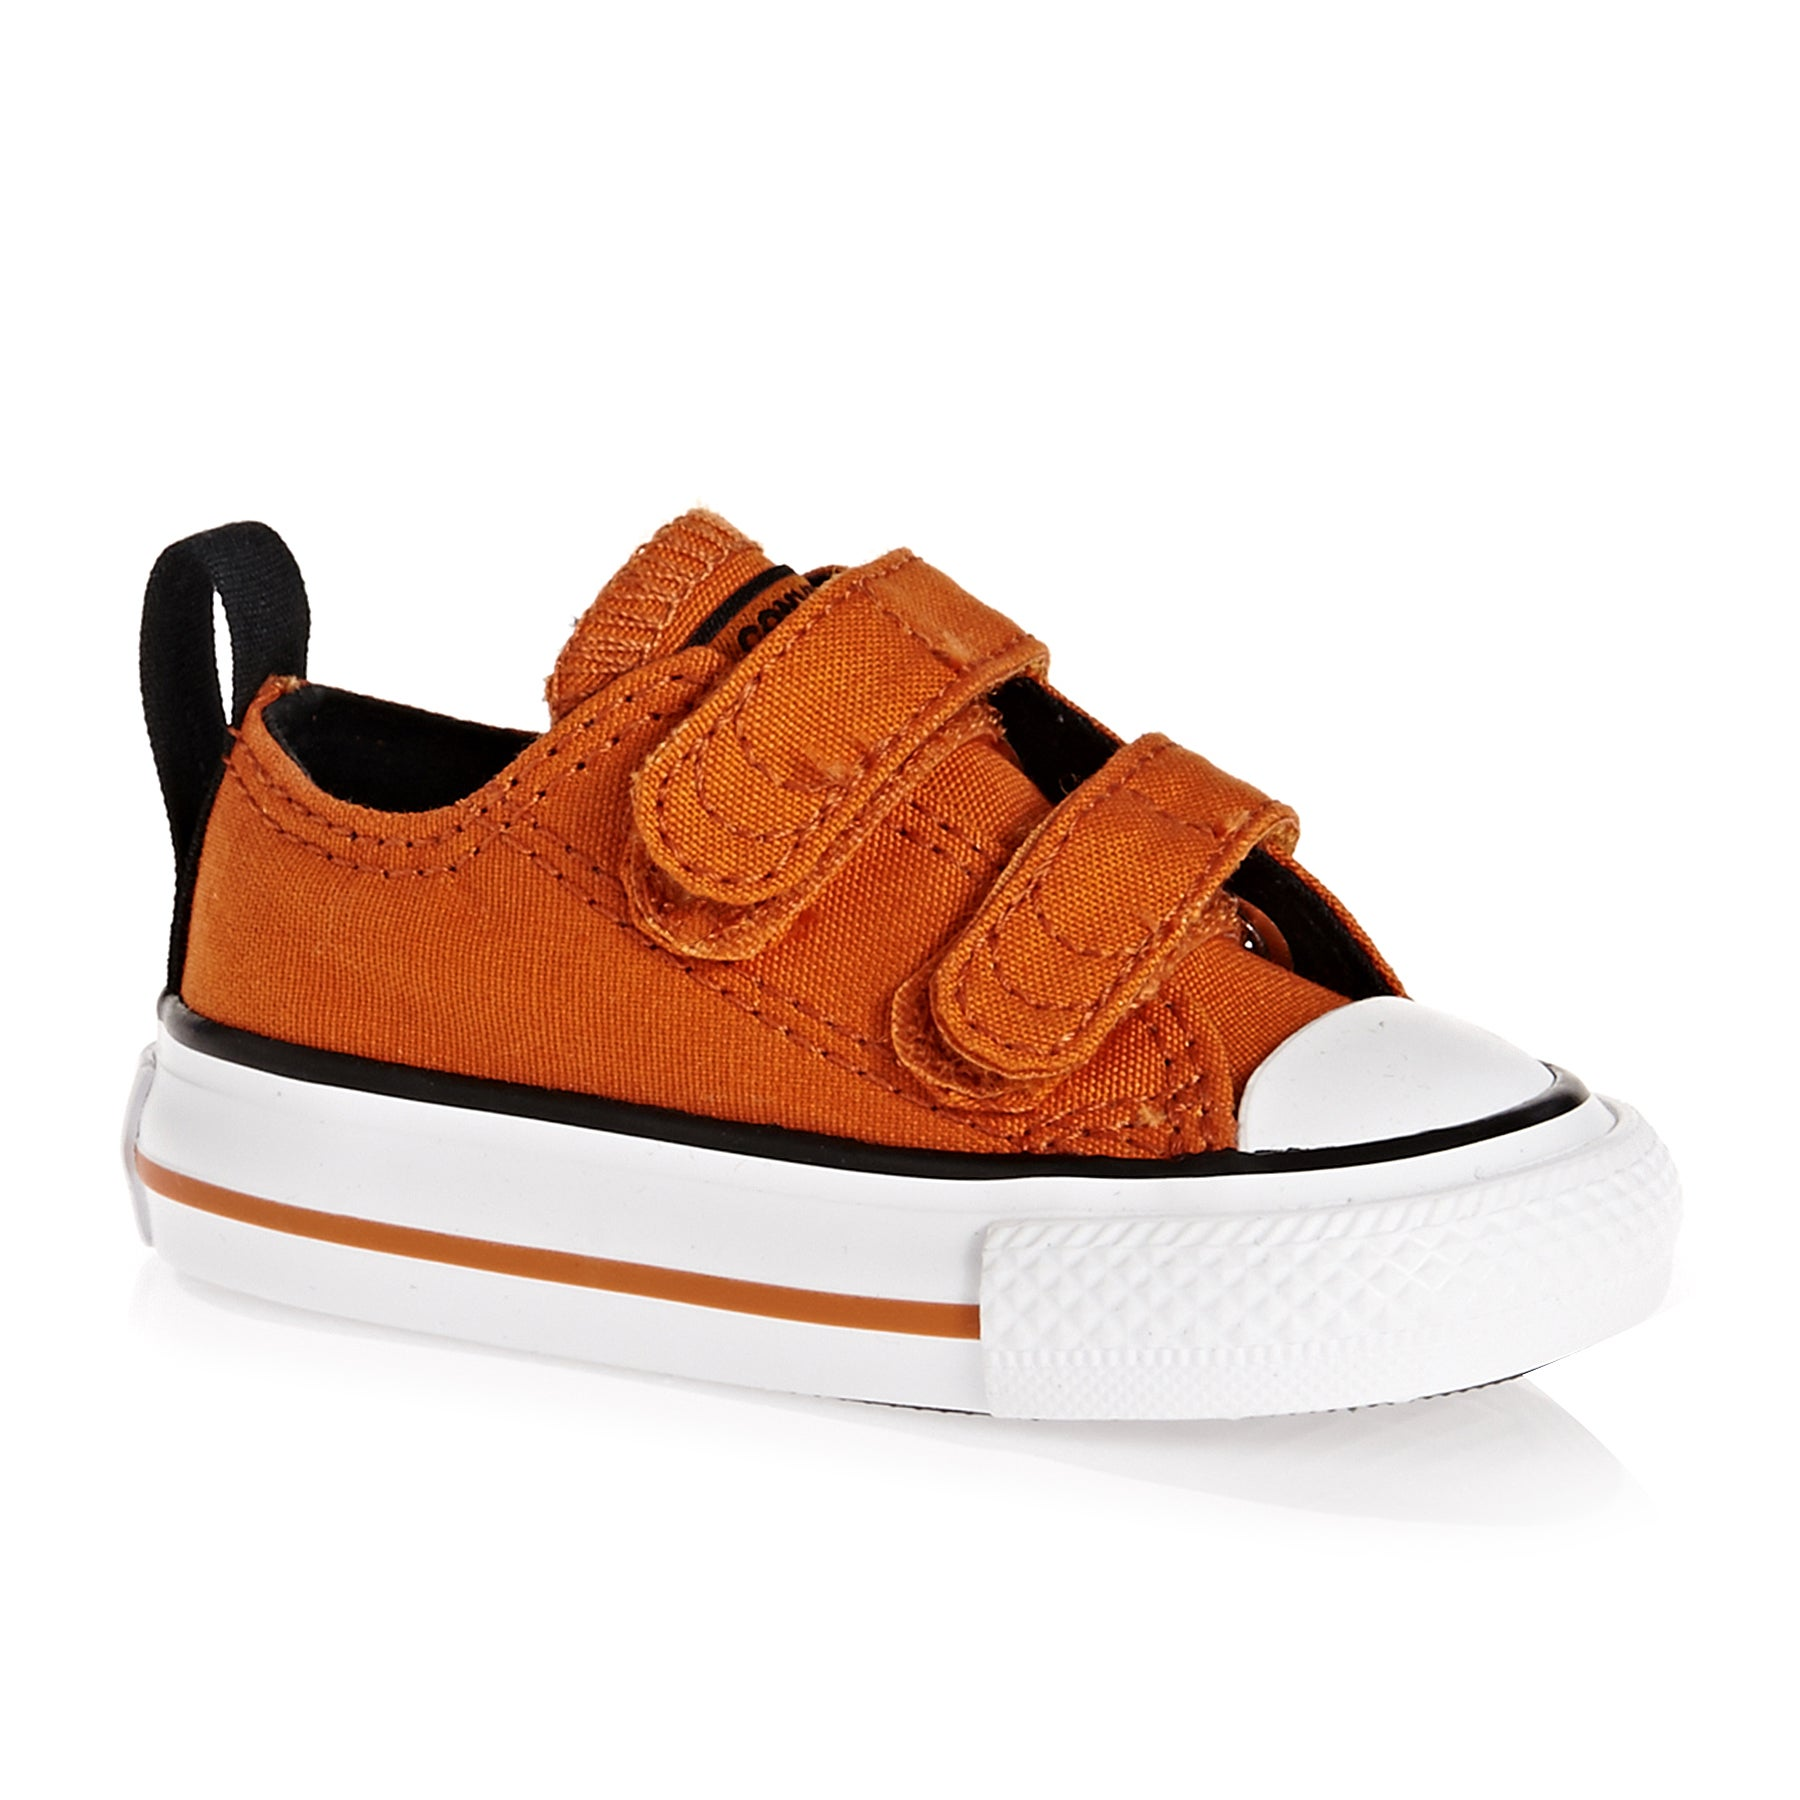 81189509b22d Converse Chuck Taylor All Star 2v Ox Baby Shoes available from Surfdome